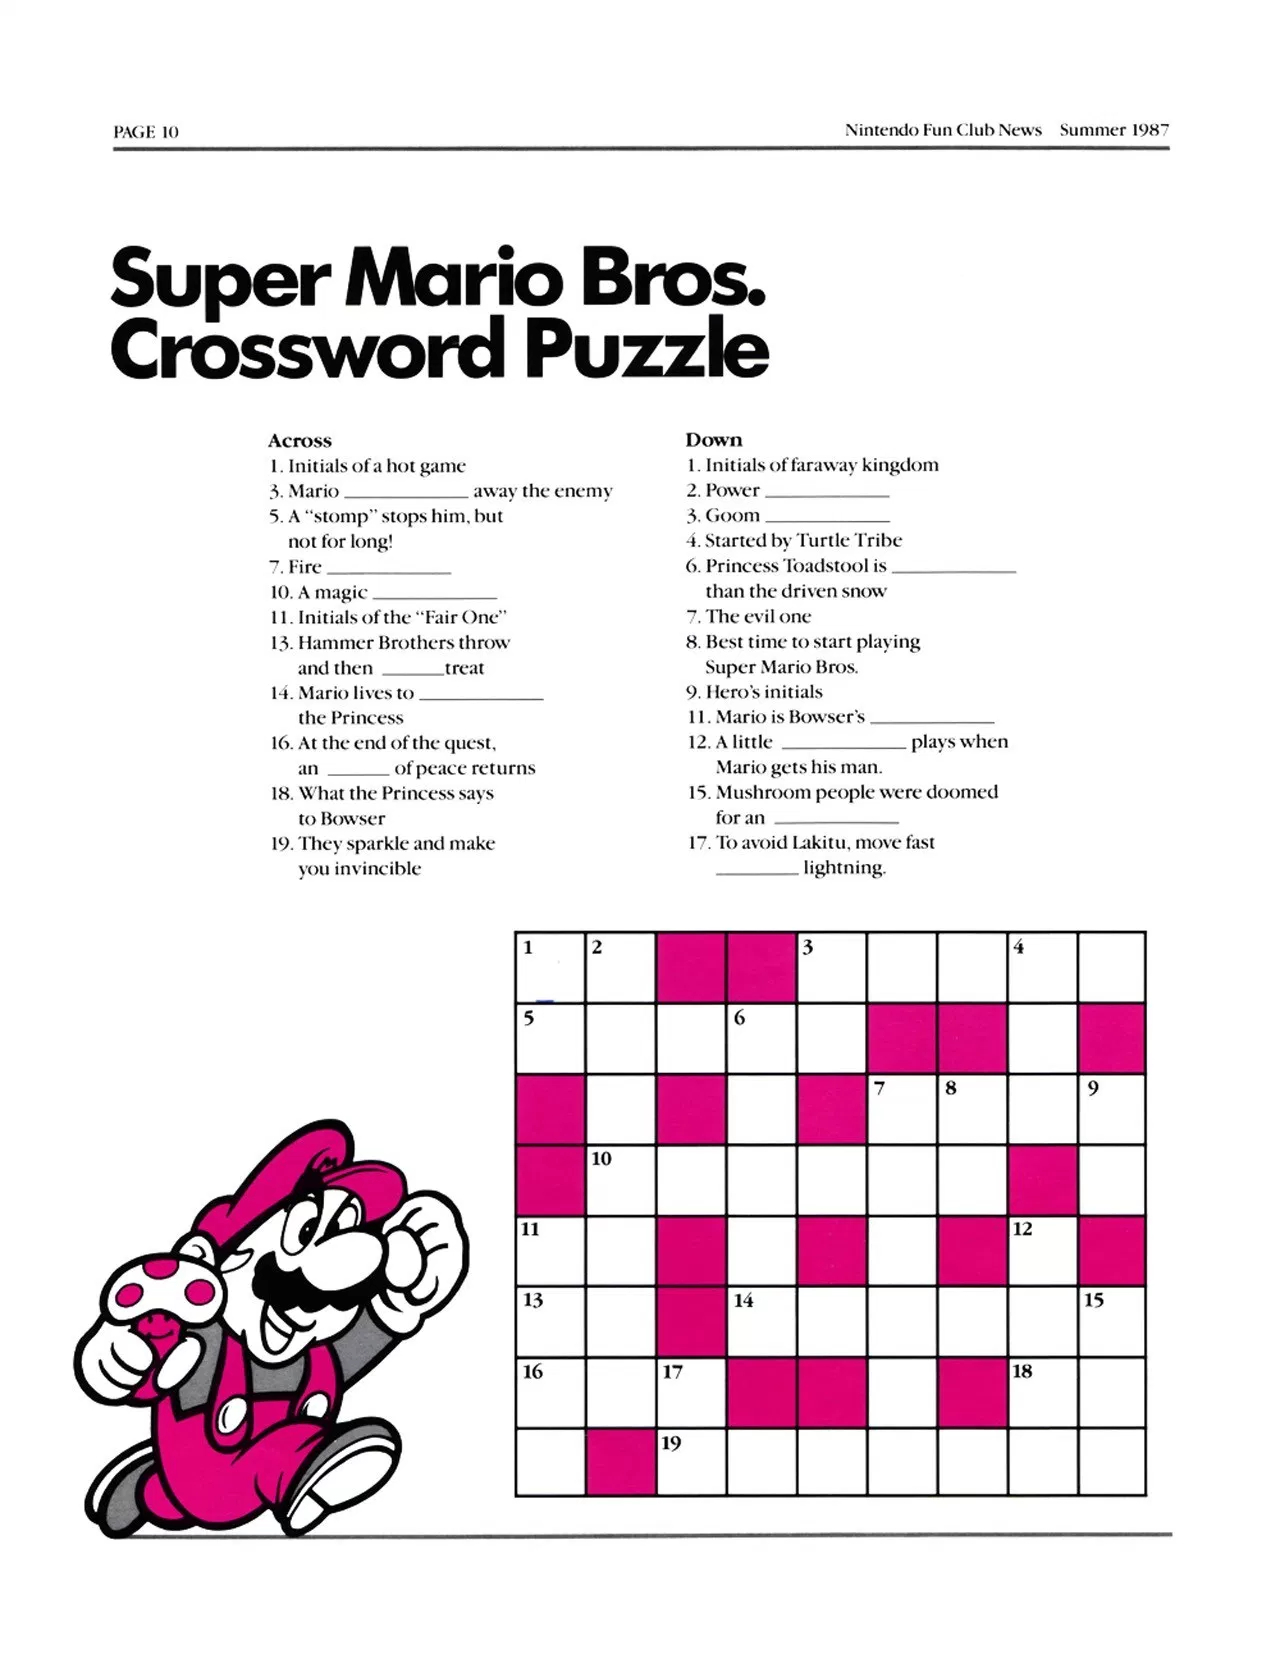 This Crossword Puzzle Is Bs - Video Game Forums - Printable Video Game Crossword Puzzles